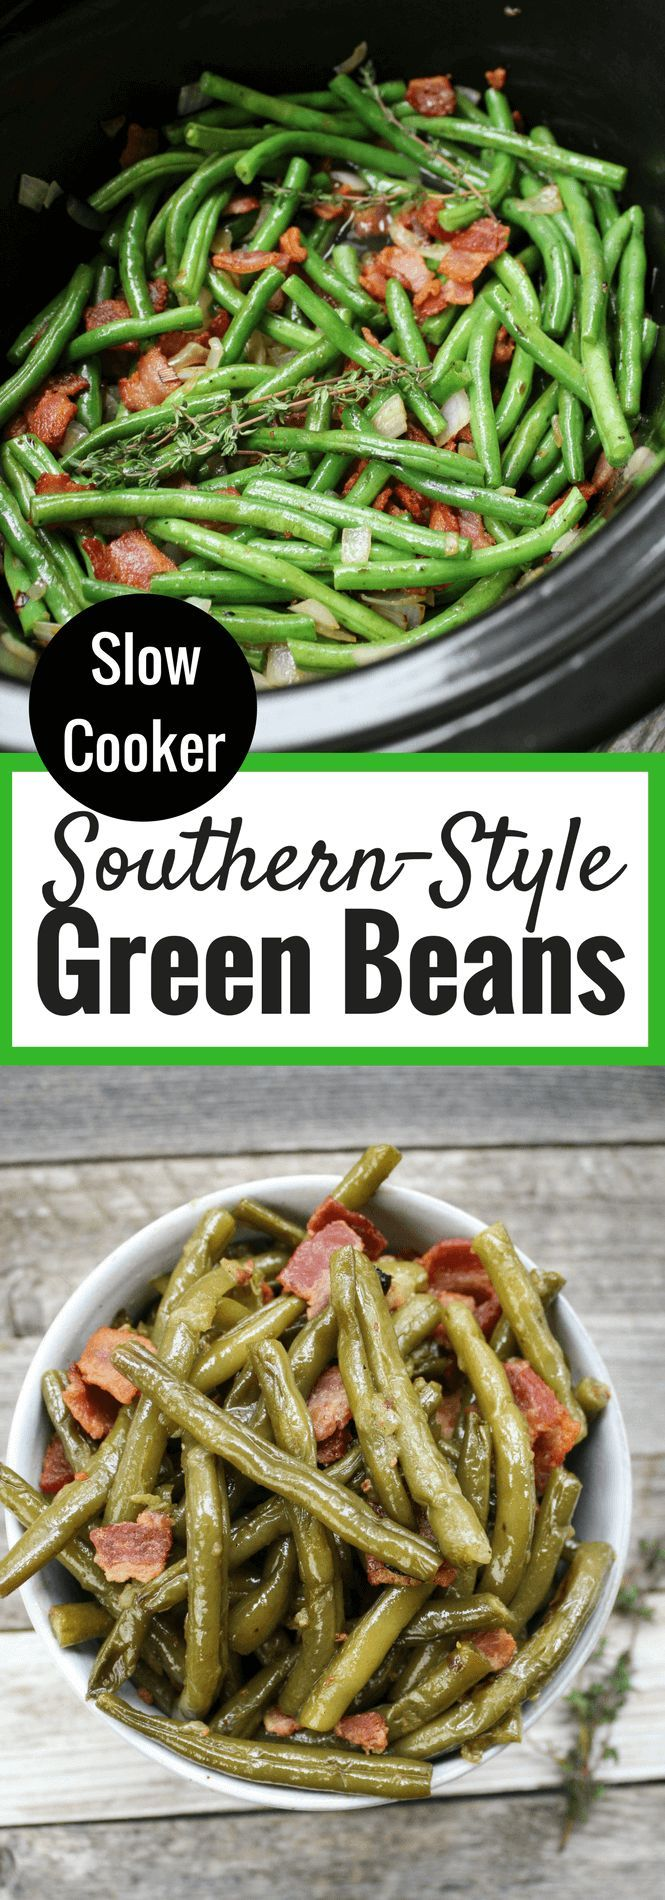 Crockpot Southern-Style Green Beans #thanksiving side dish #crockpot